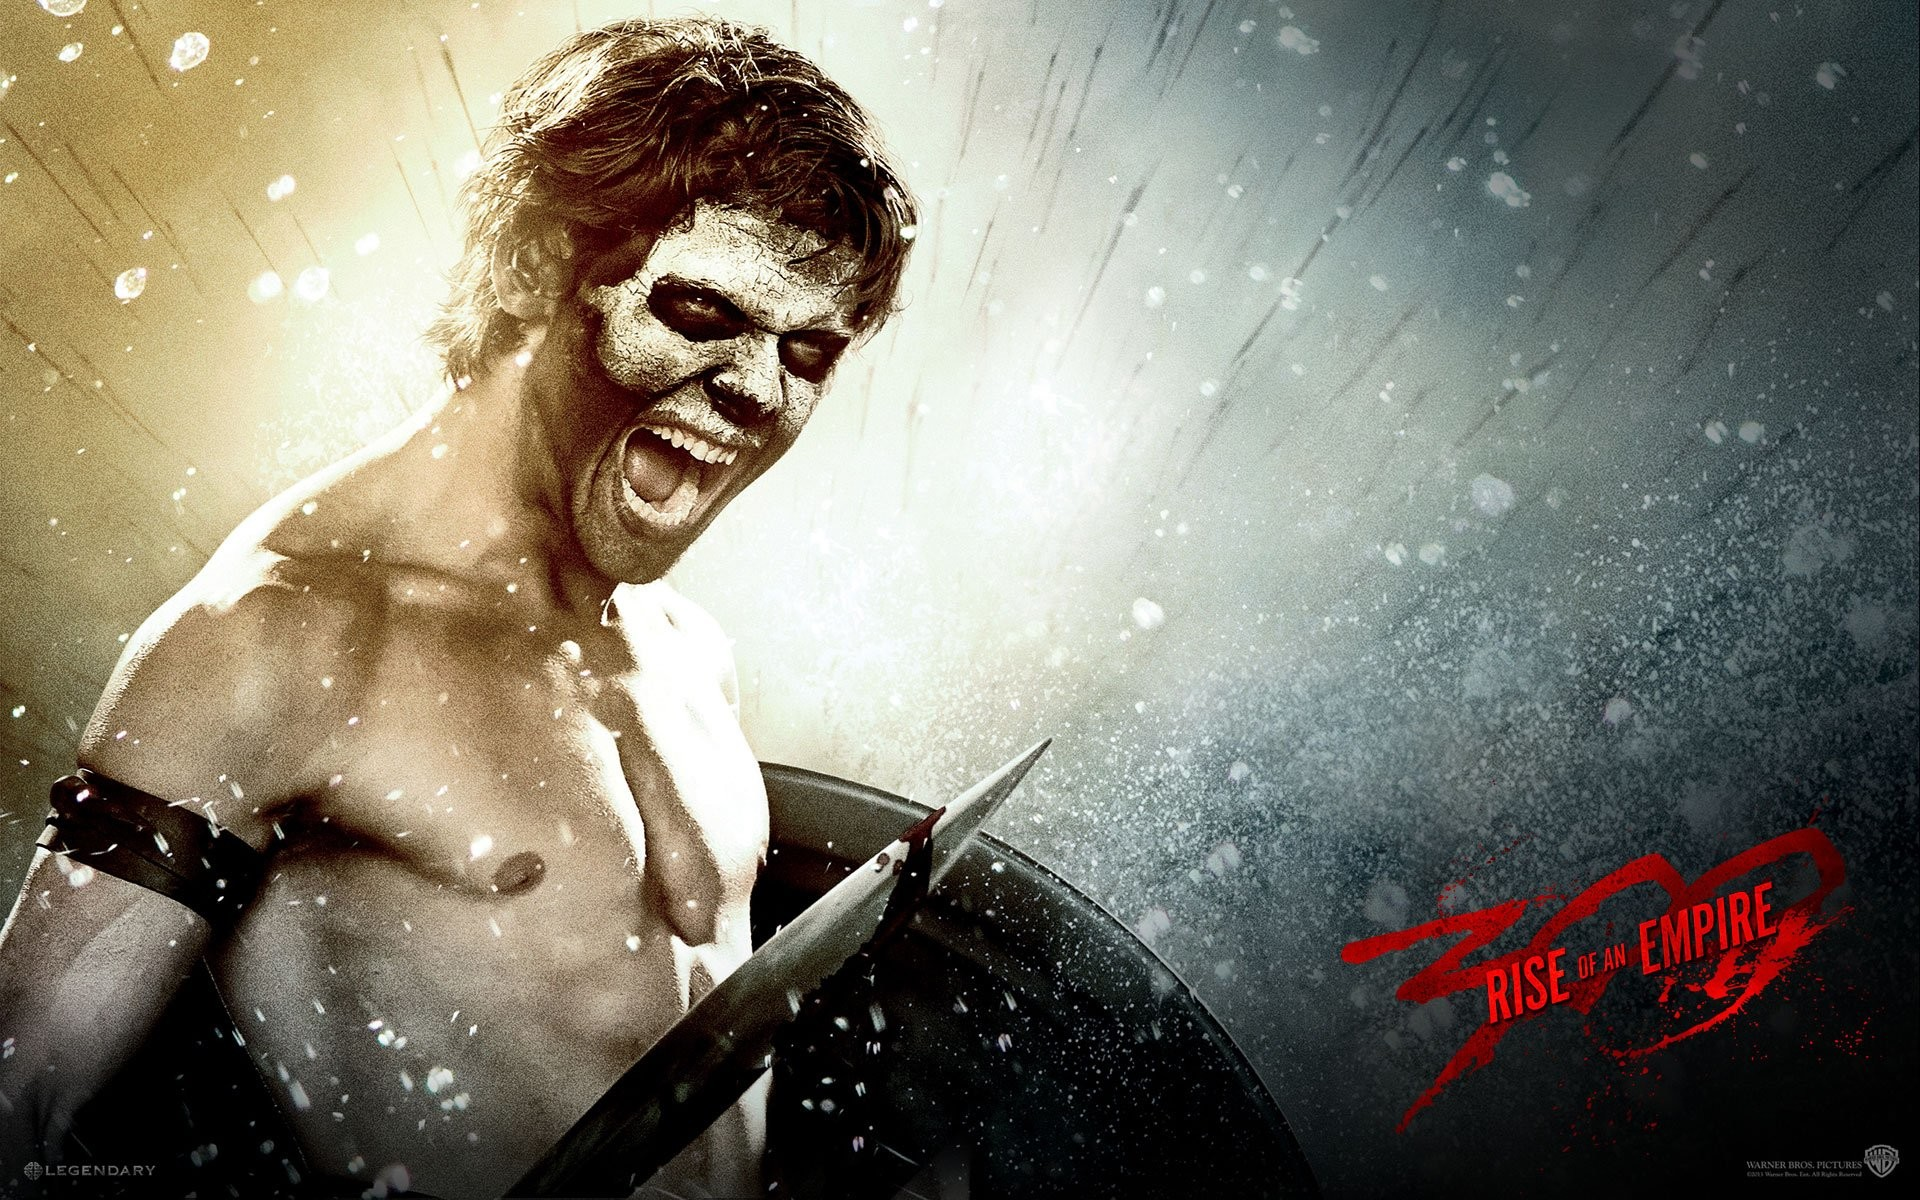 300 rise of an empire full movie free download